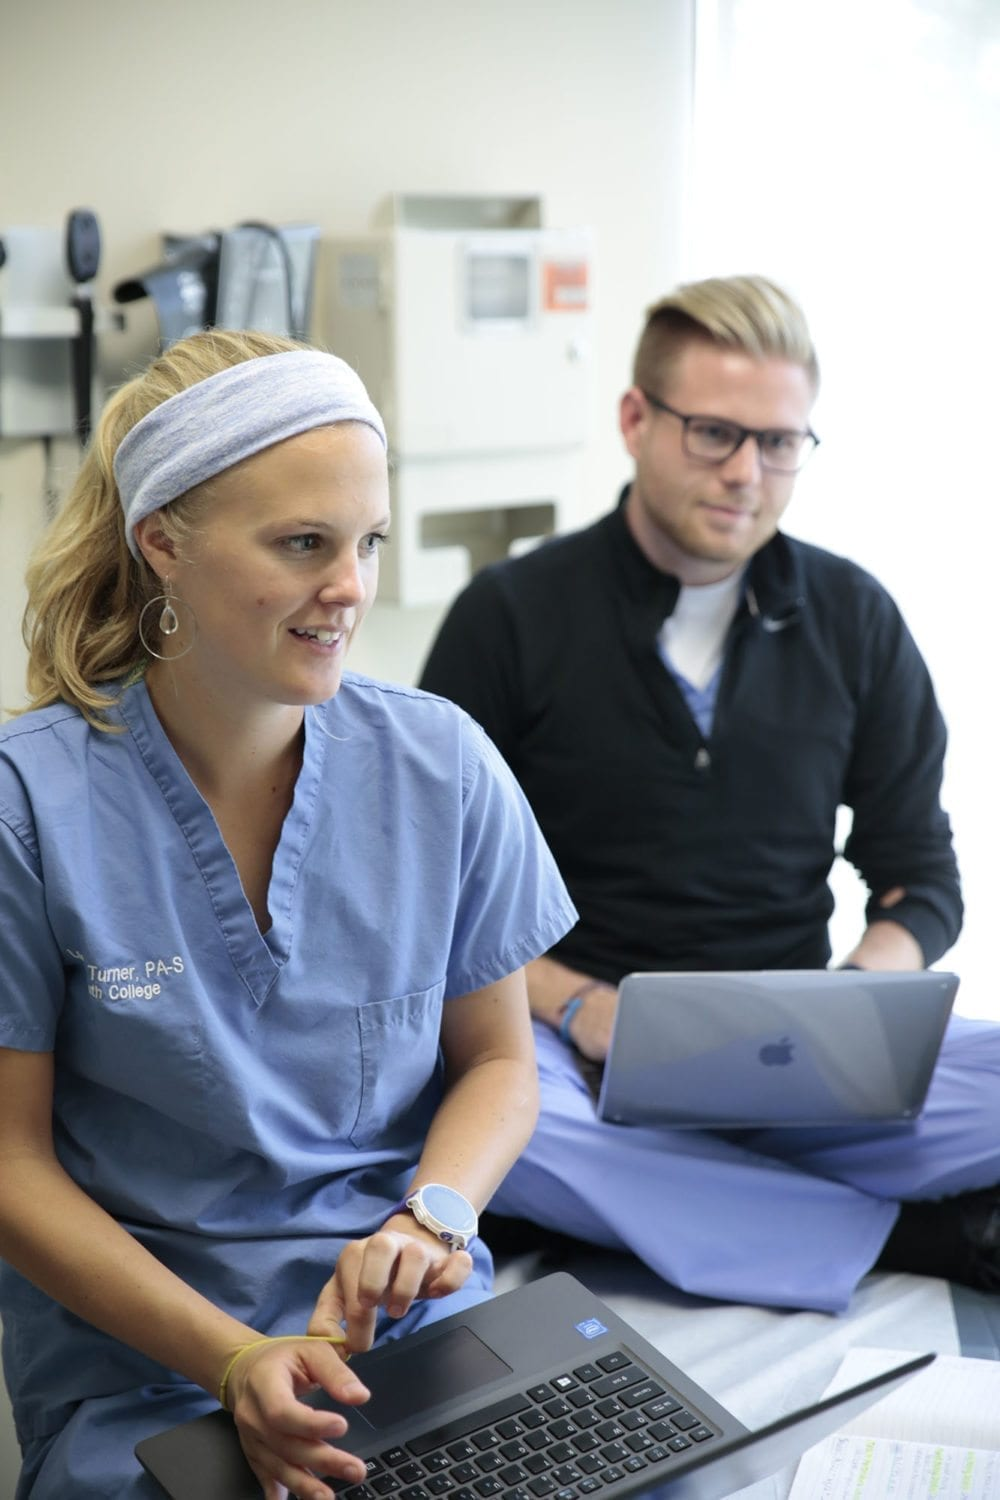 Medical Sonography Students